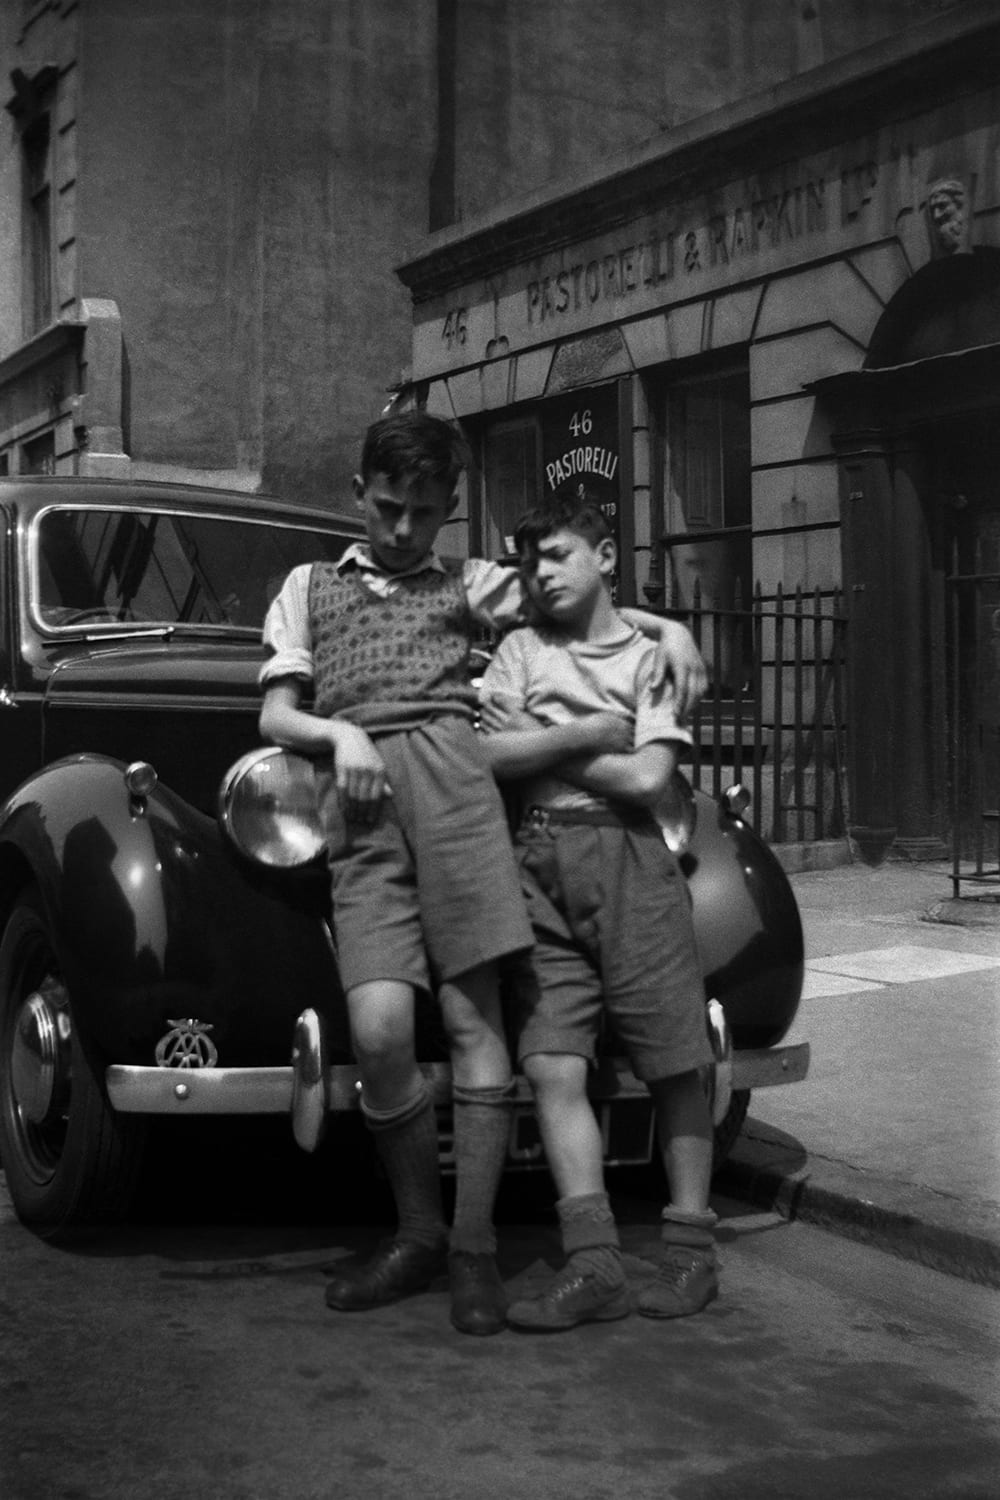 Italian Boys, Hutton Garden, London, 1948. O'Brien took this picture of his two Italian friends with his family's old brownie box camera in Clerkenwell